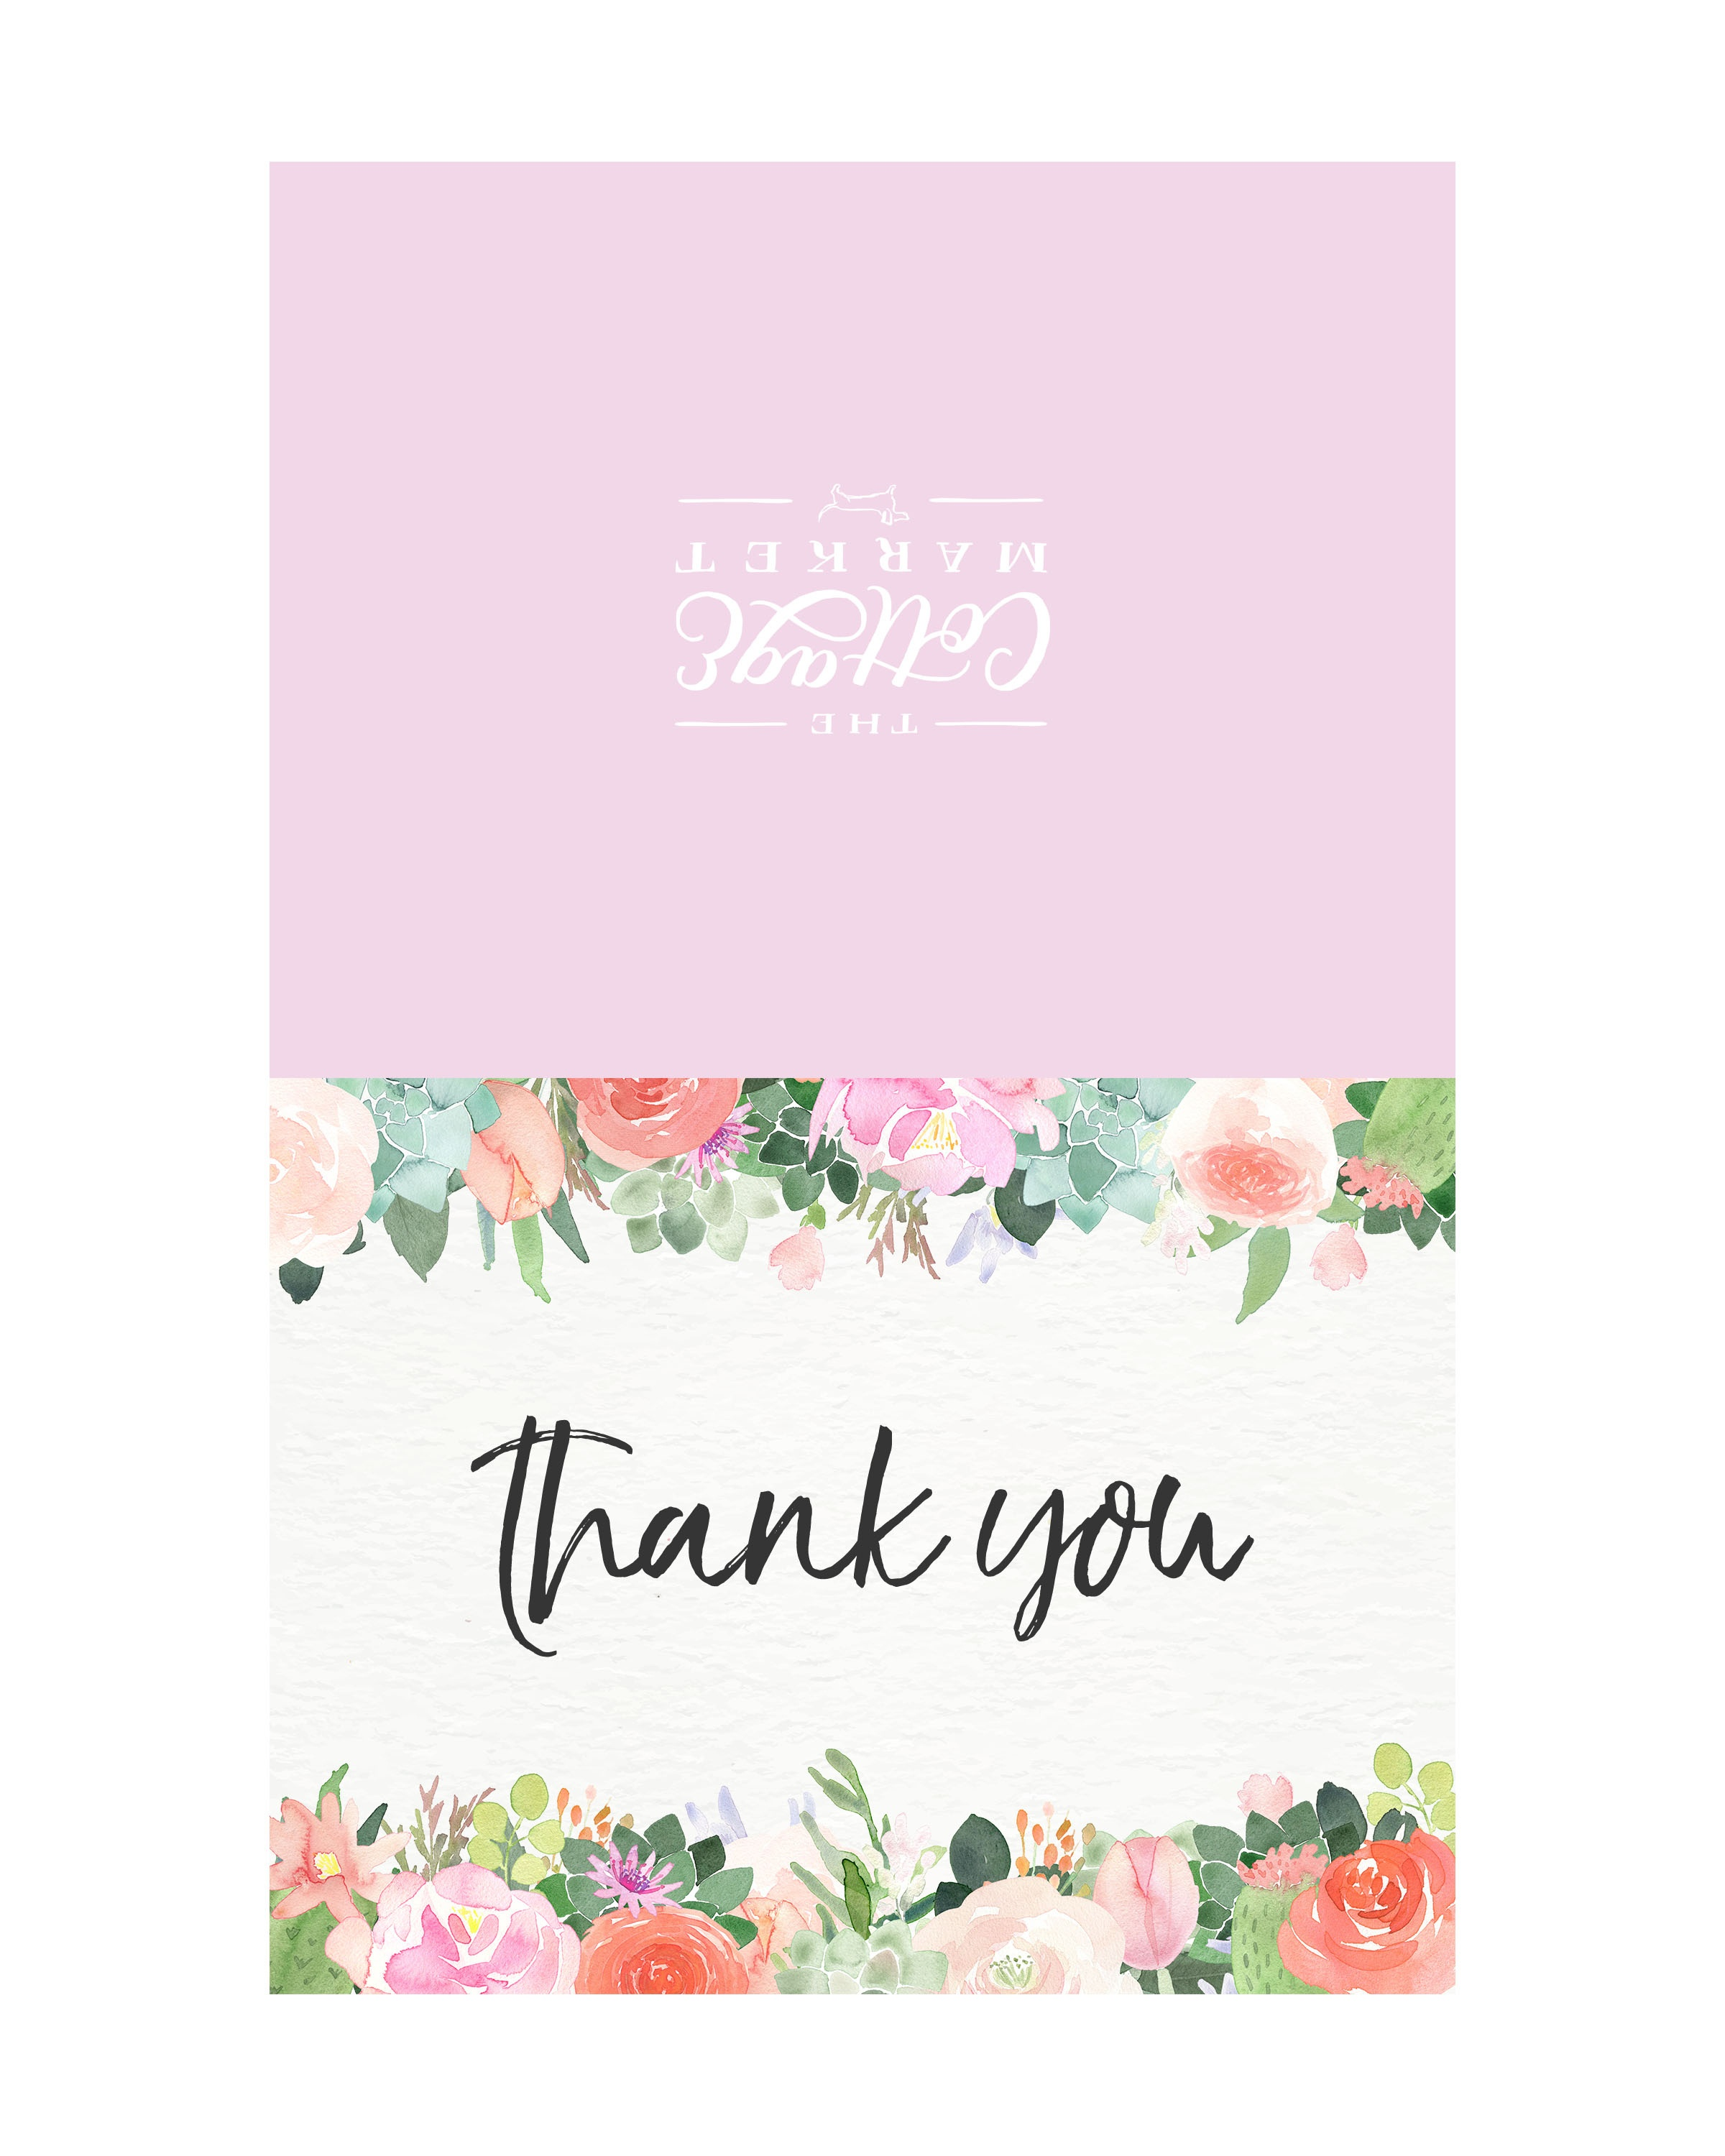 10 Free Printable Thank You Cards You Can't Miss - The Cottage Market - Free Printable Cards